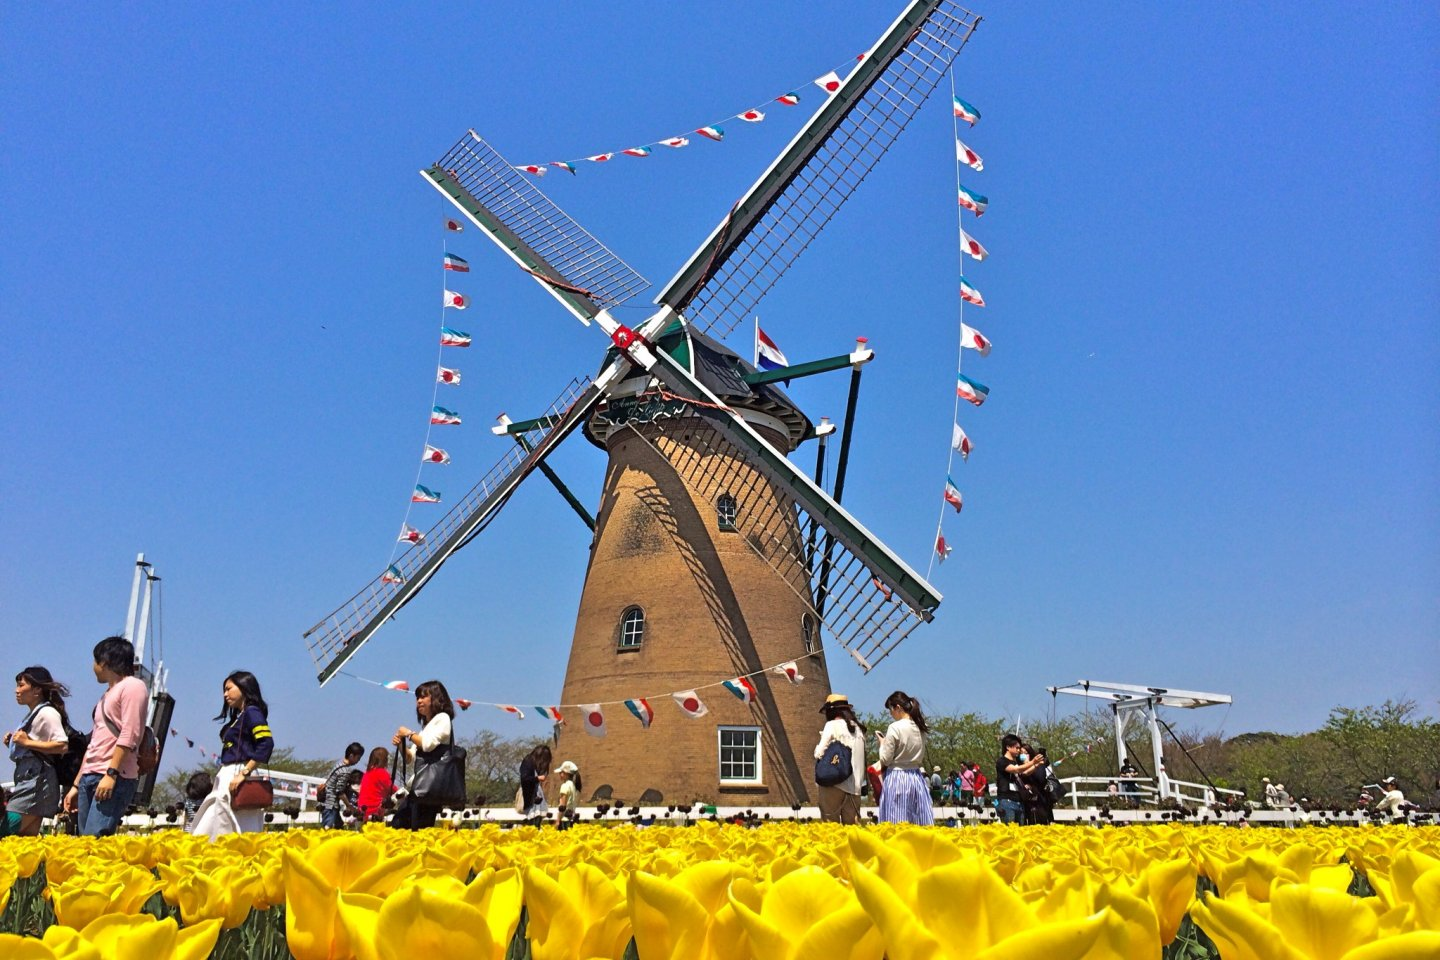 The landmark windmill was made in the Netherlands and assembled here in Sakura City. The Sunny Yellow Tulips make for a fantastic frame when photographed.